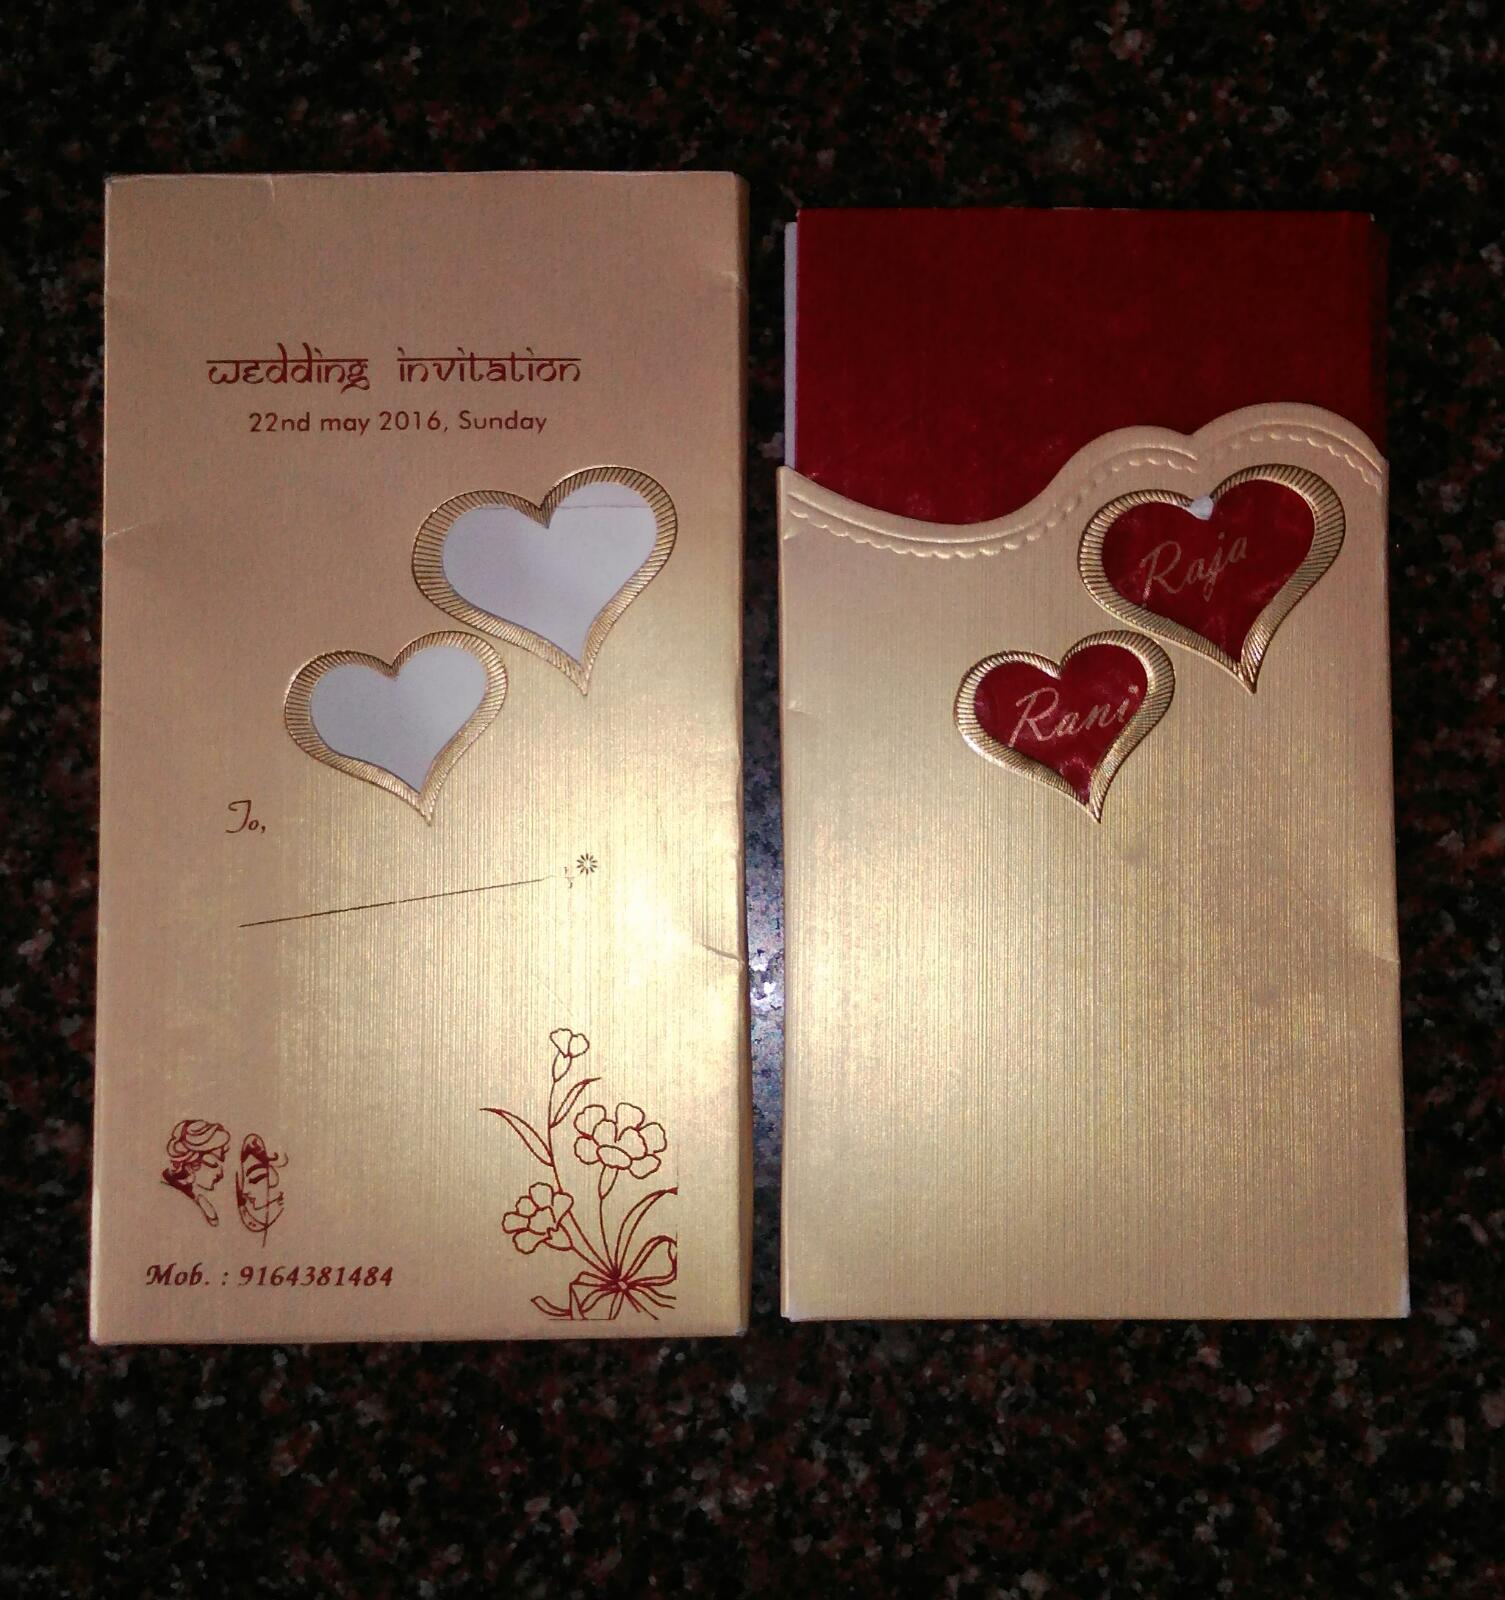 wedding invitation cards manufacturers in bangalore - 28 images ...